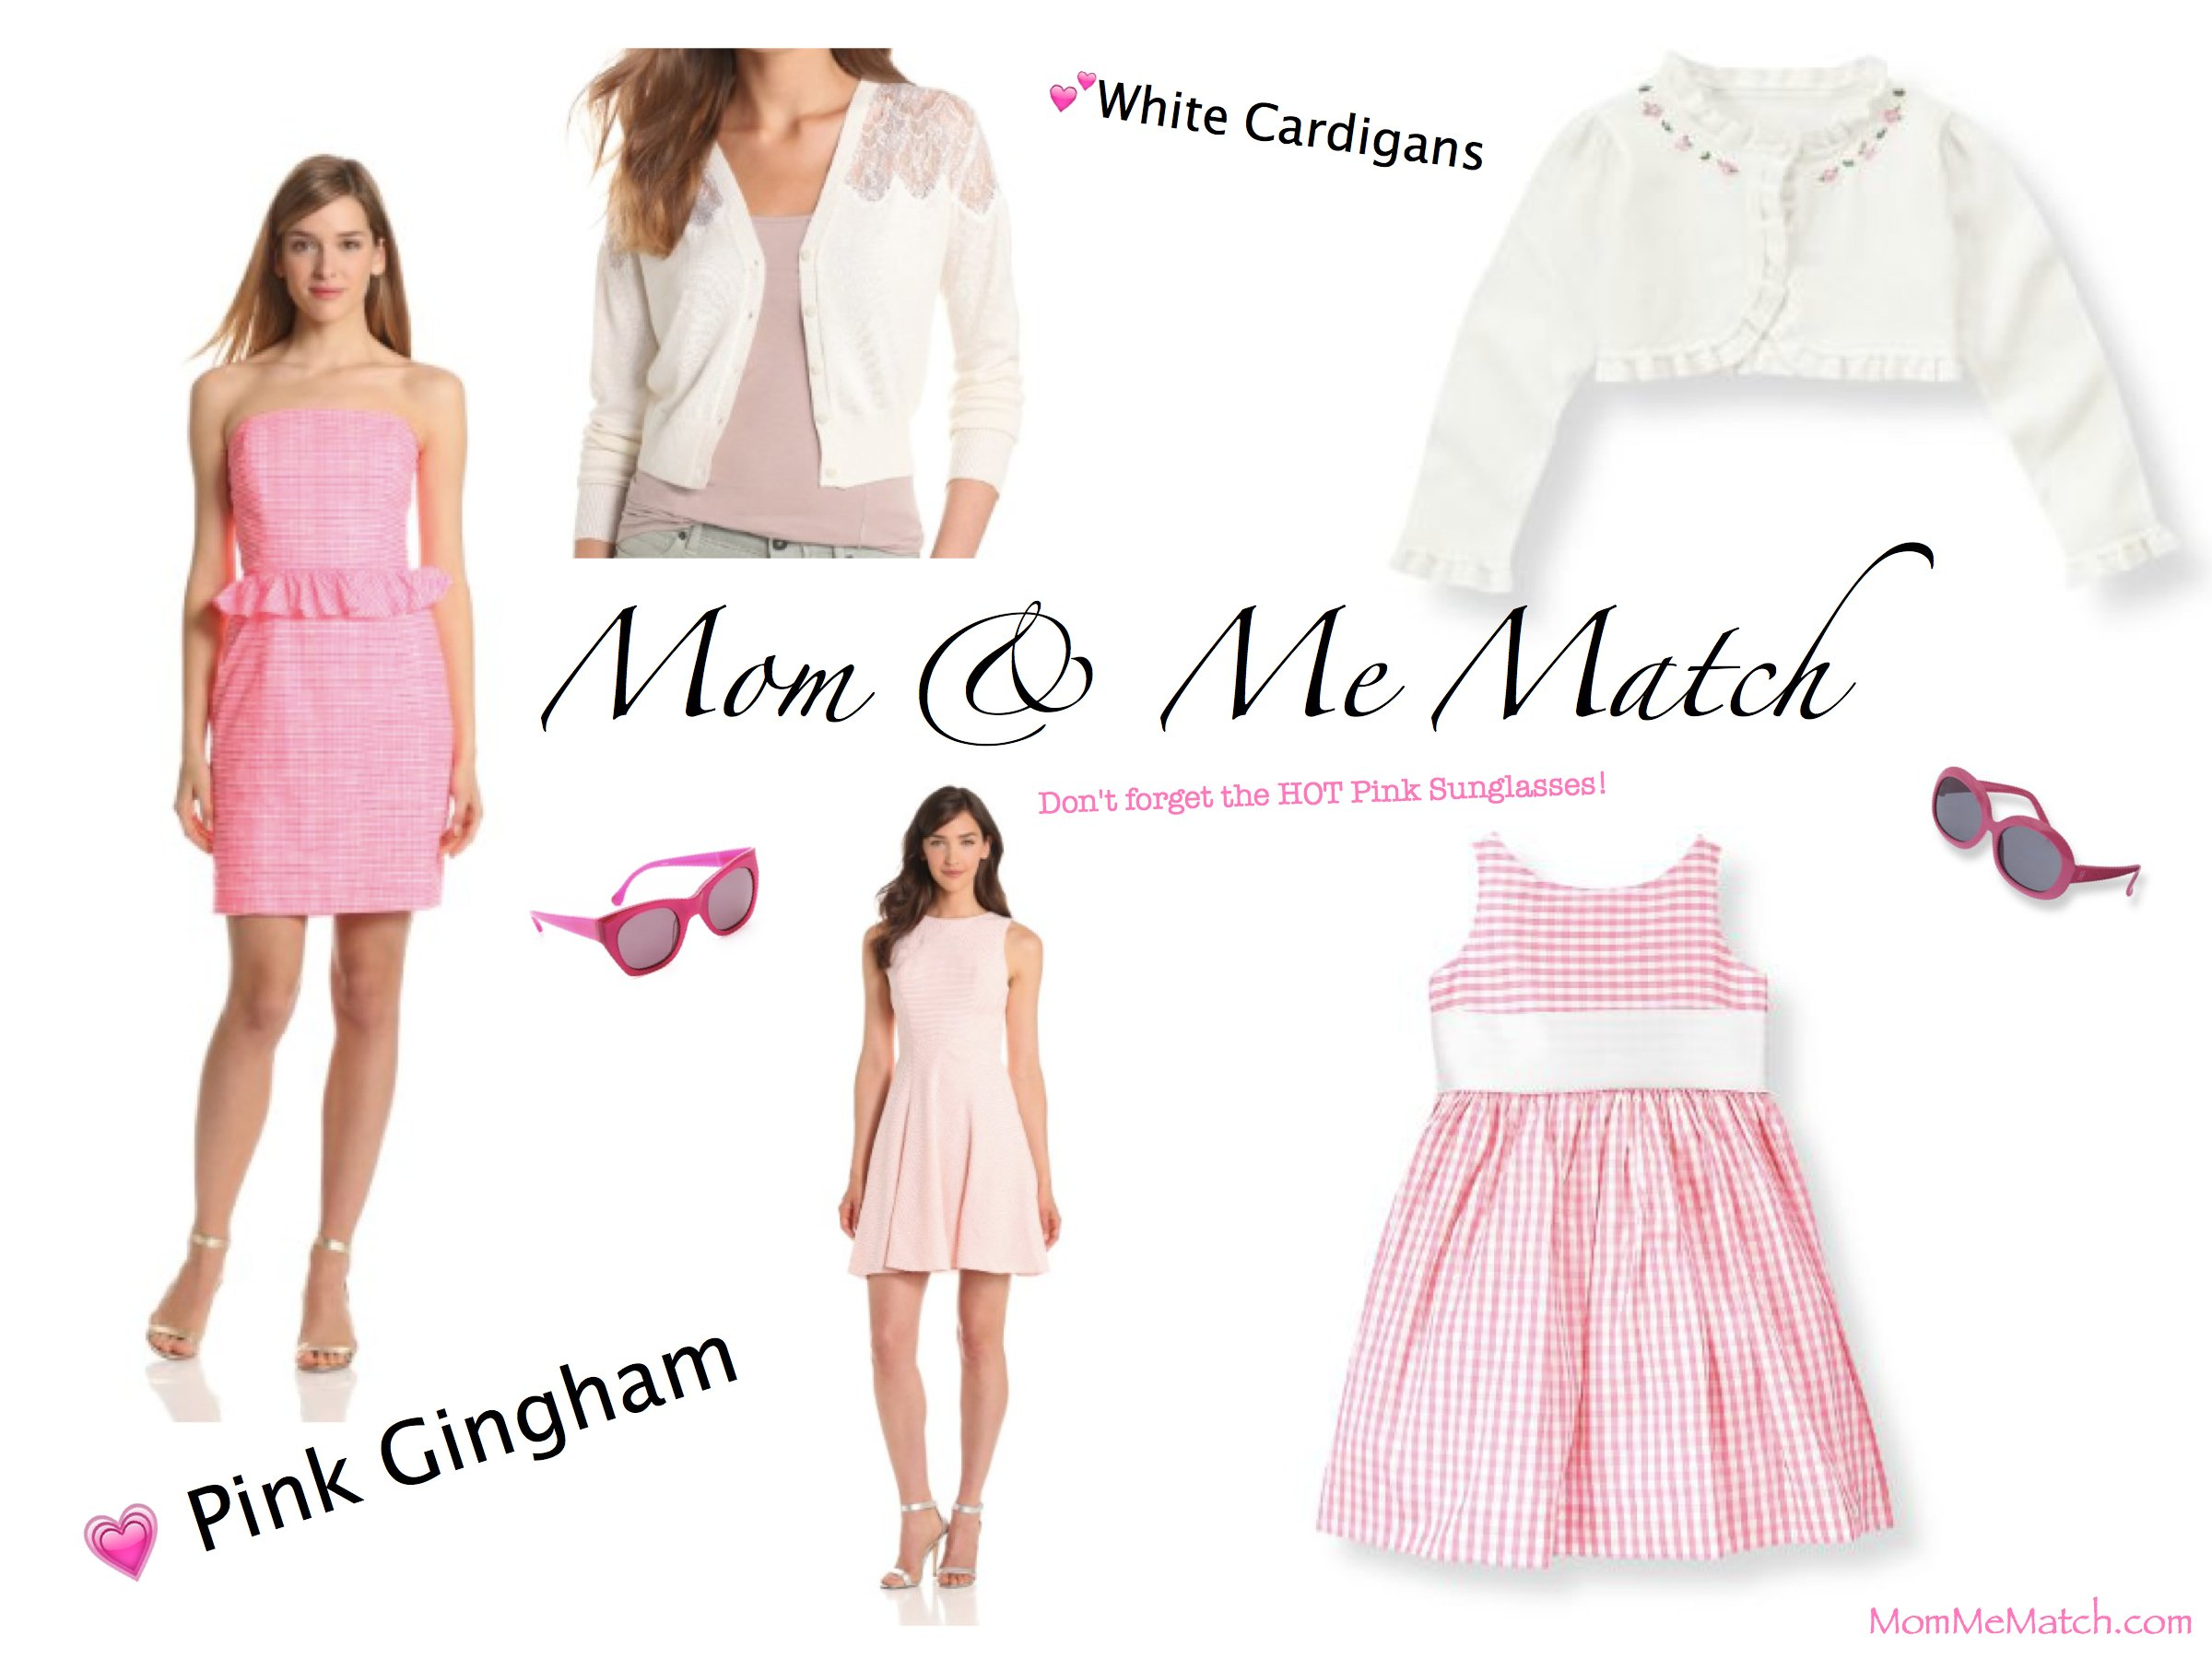 Mom & Me Matching Pink Gingham Dresses & White Cardigans